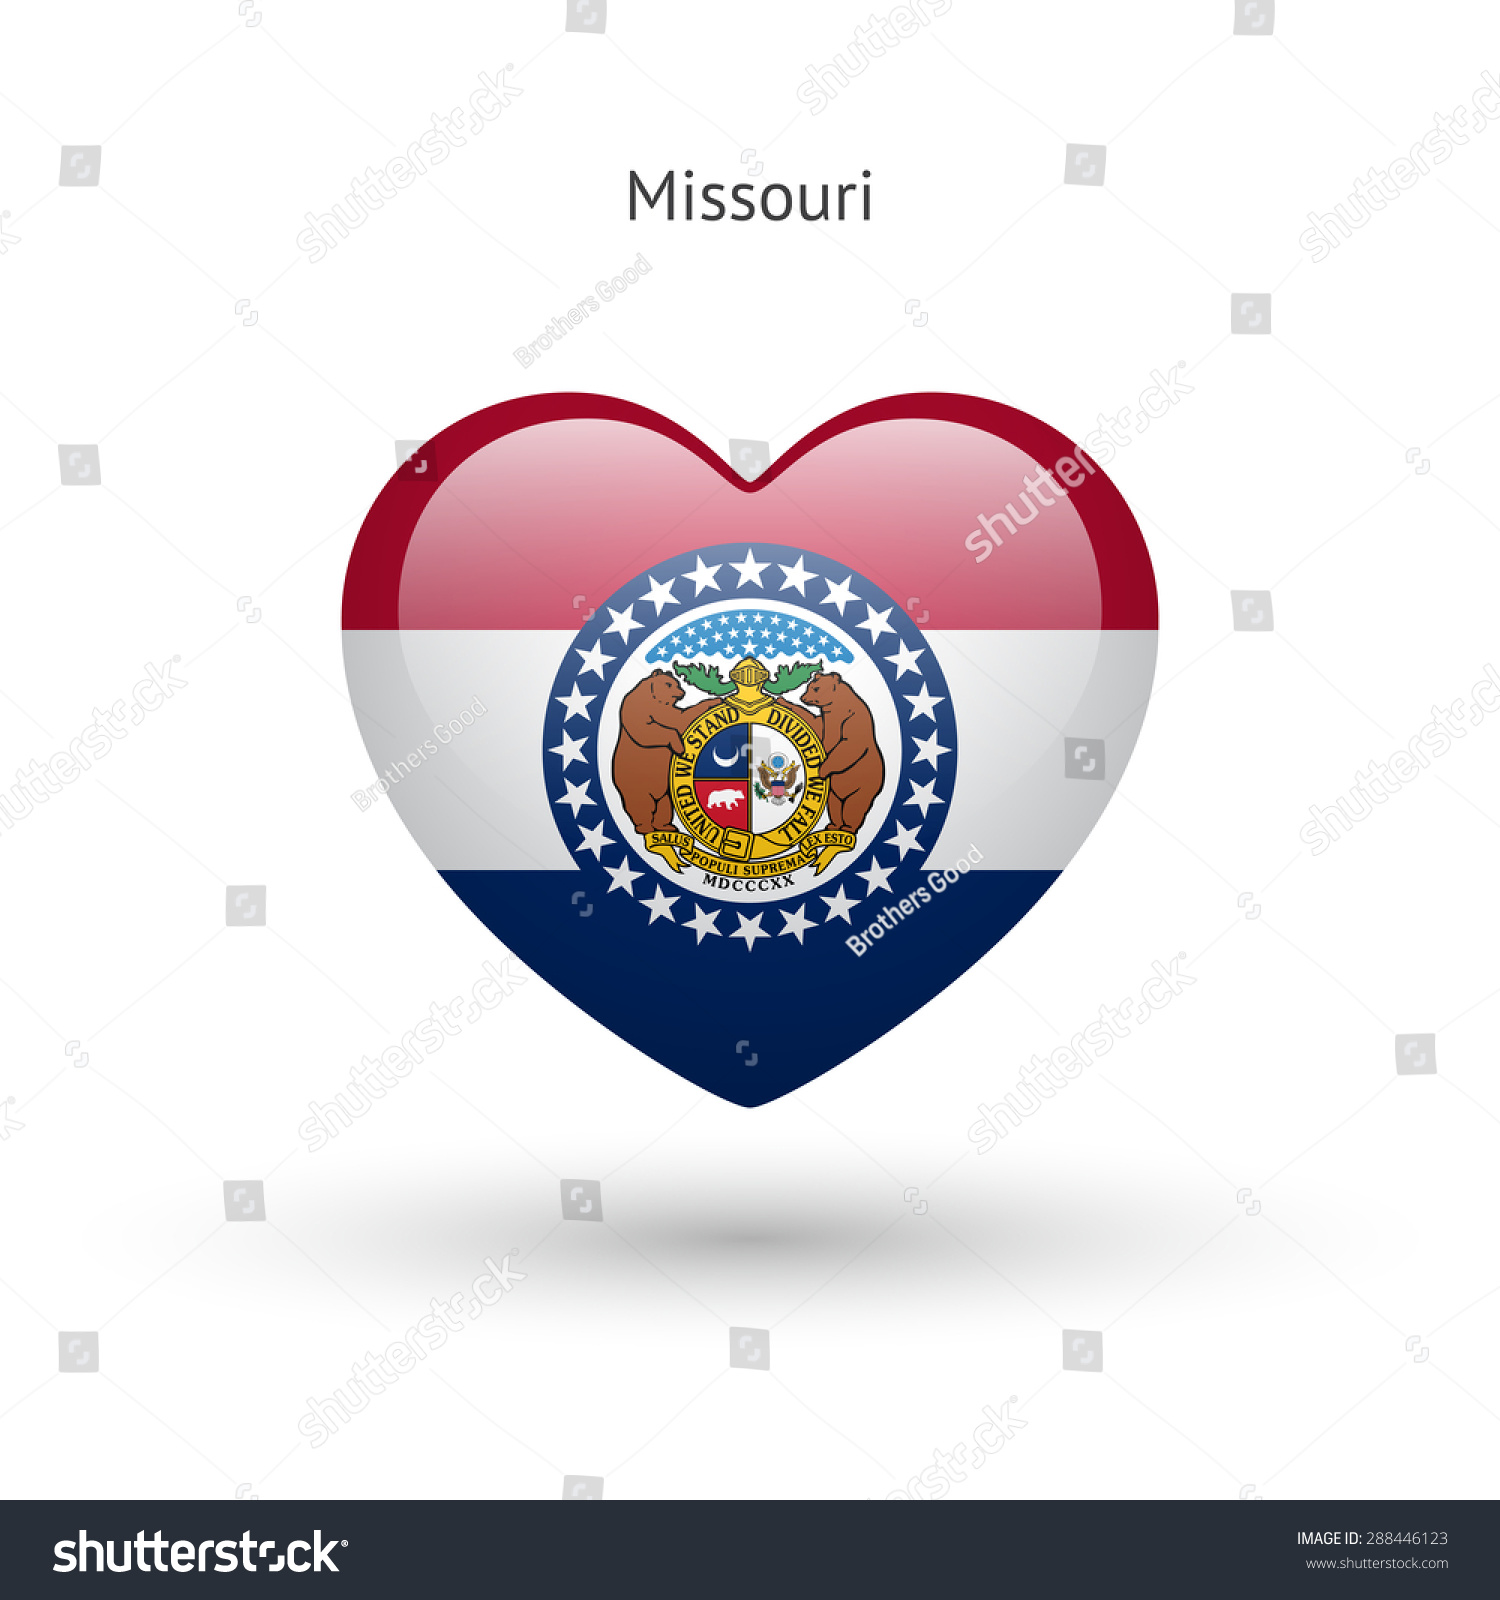 Love missouri state symbol heart flag stock vector 288446123 love missouri state symbol heart flag icon vector illustration buycottarizona